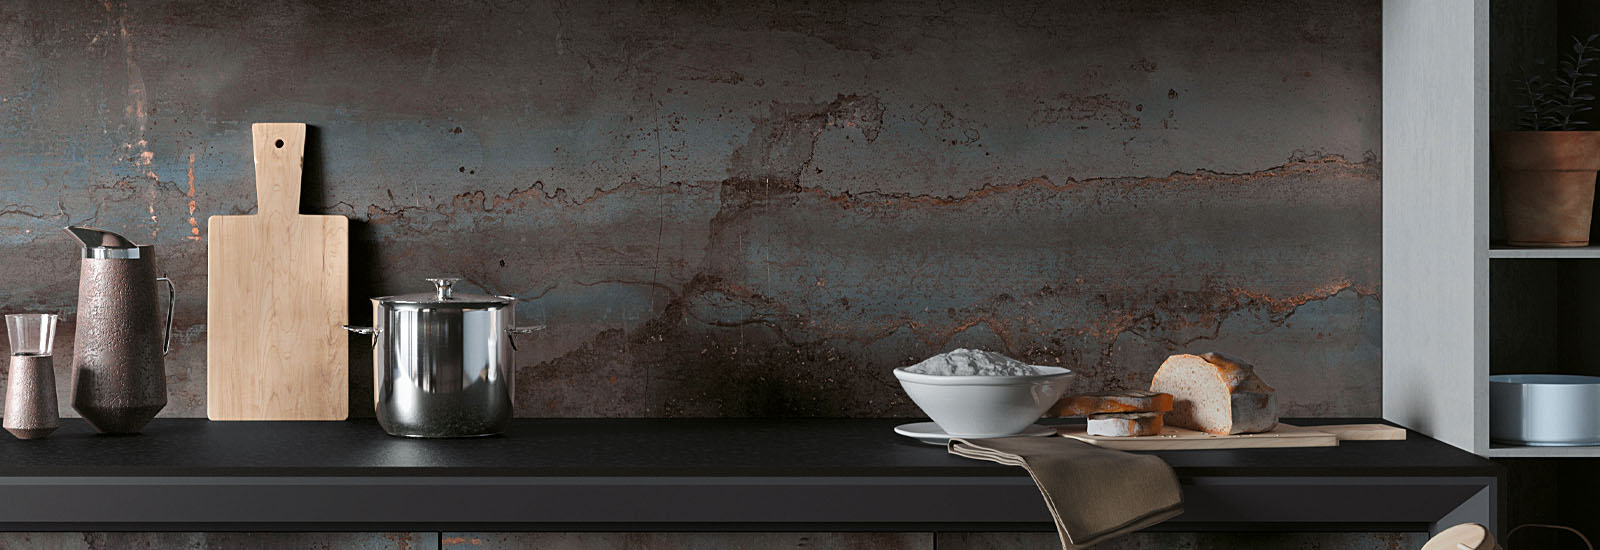 Infinity Surfaces - Marble Stone and concrete inspired designs